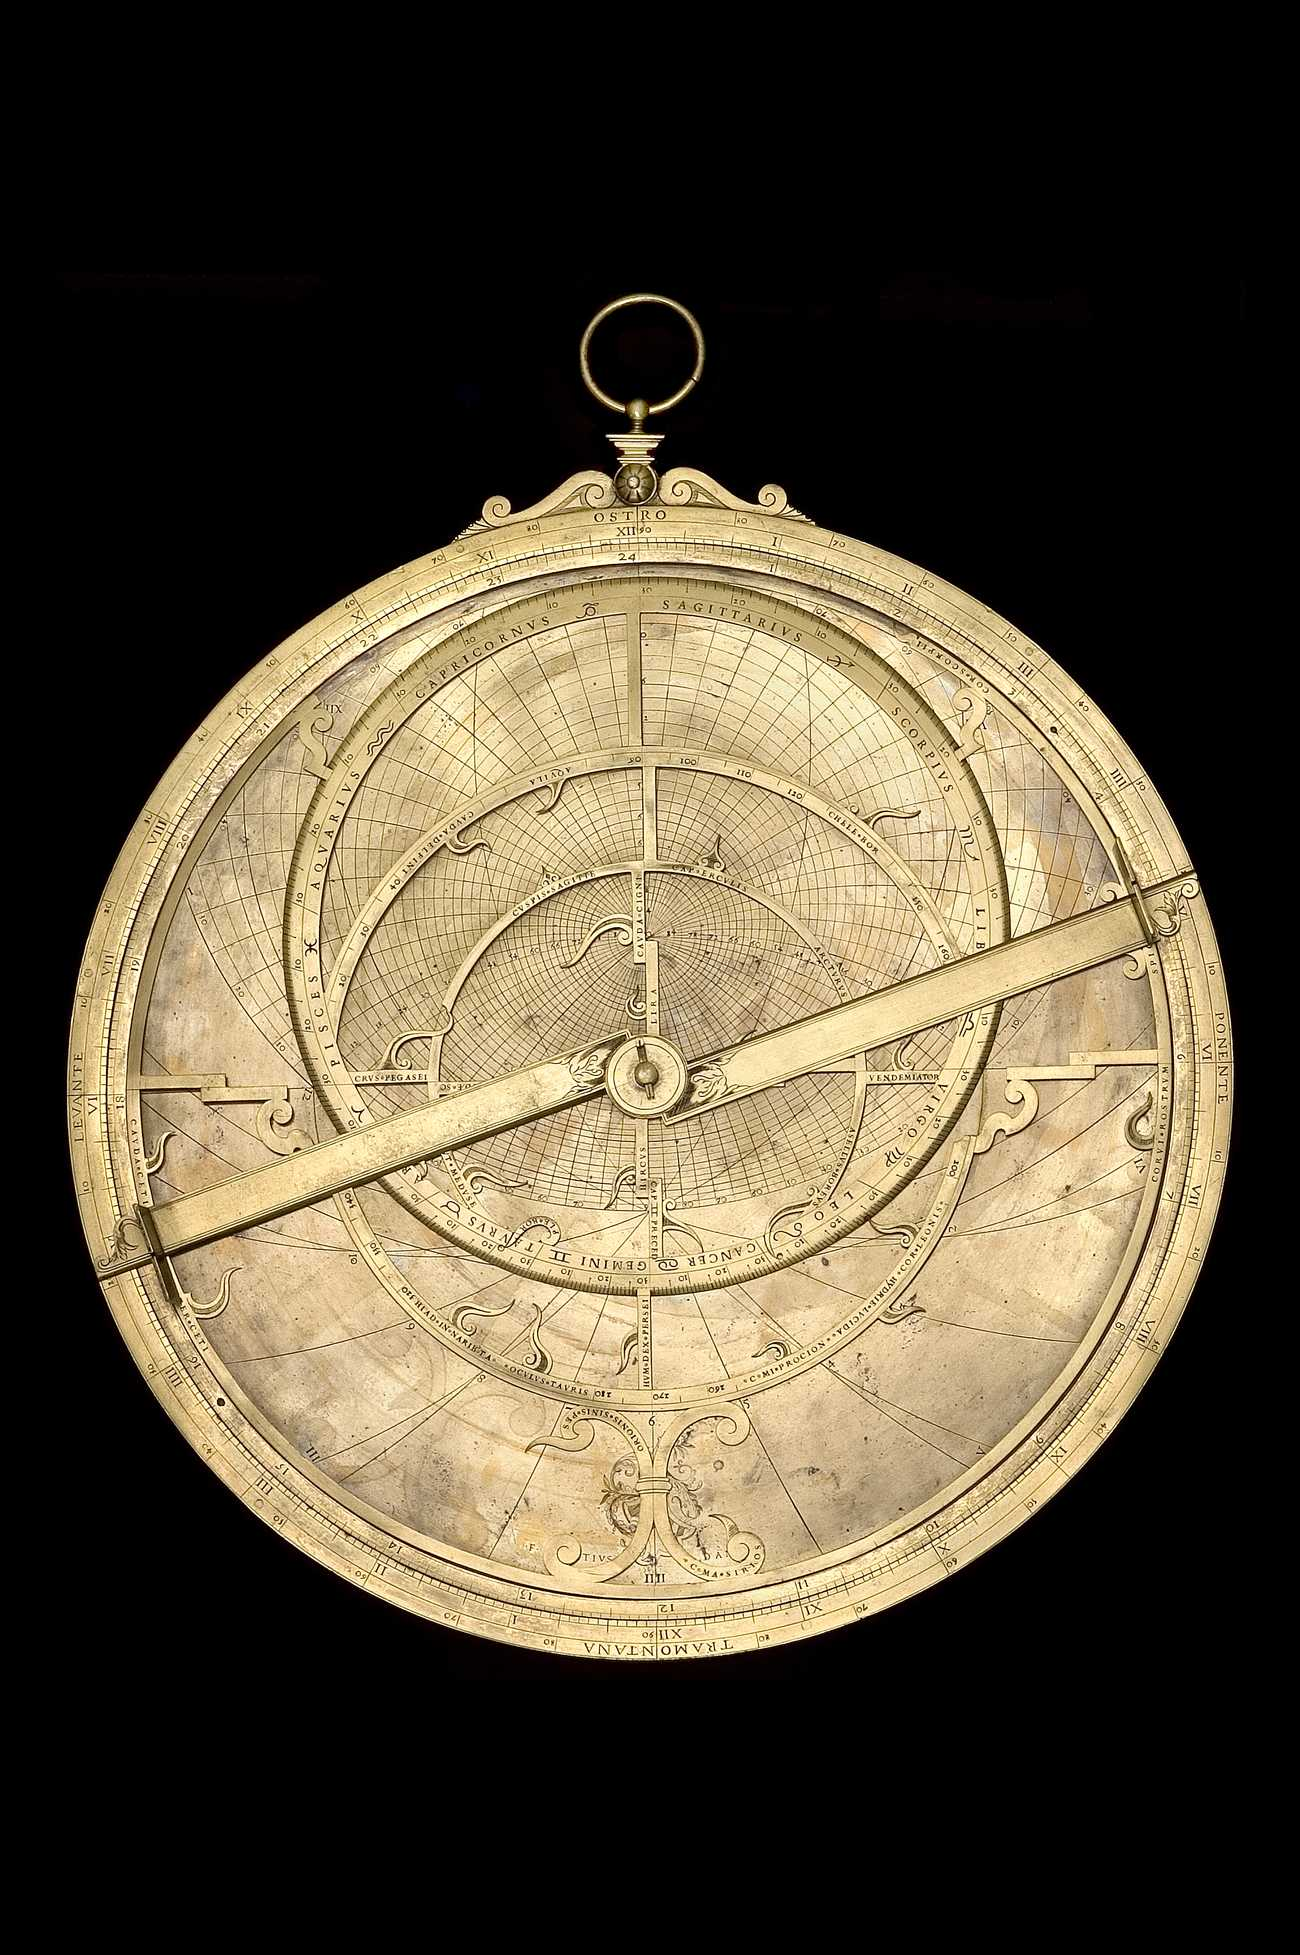 Astrolabe Image Report Inventory Number 52473: Astrolabe Report (inventory Number 52209